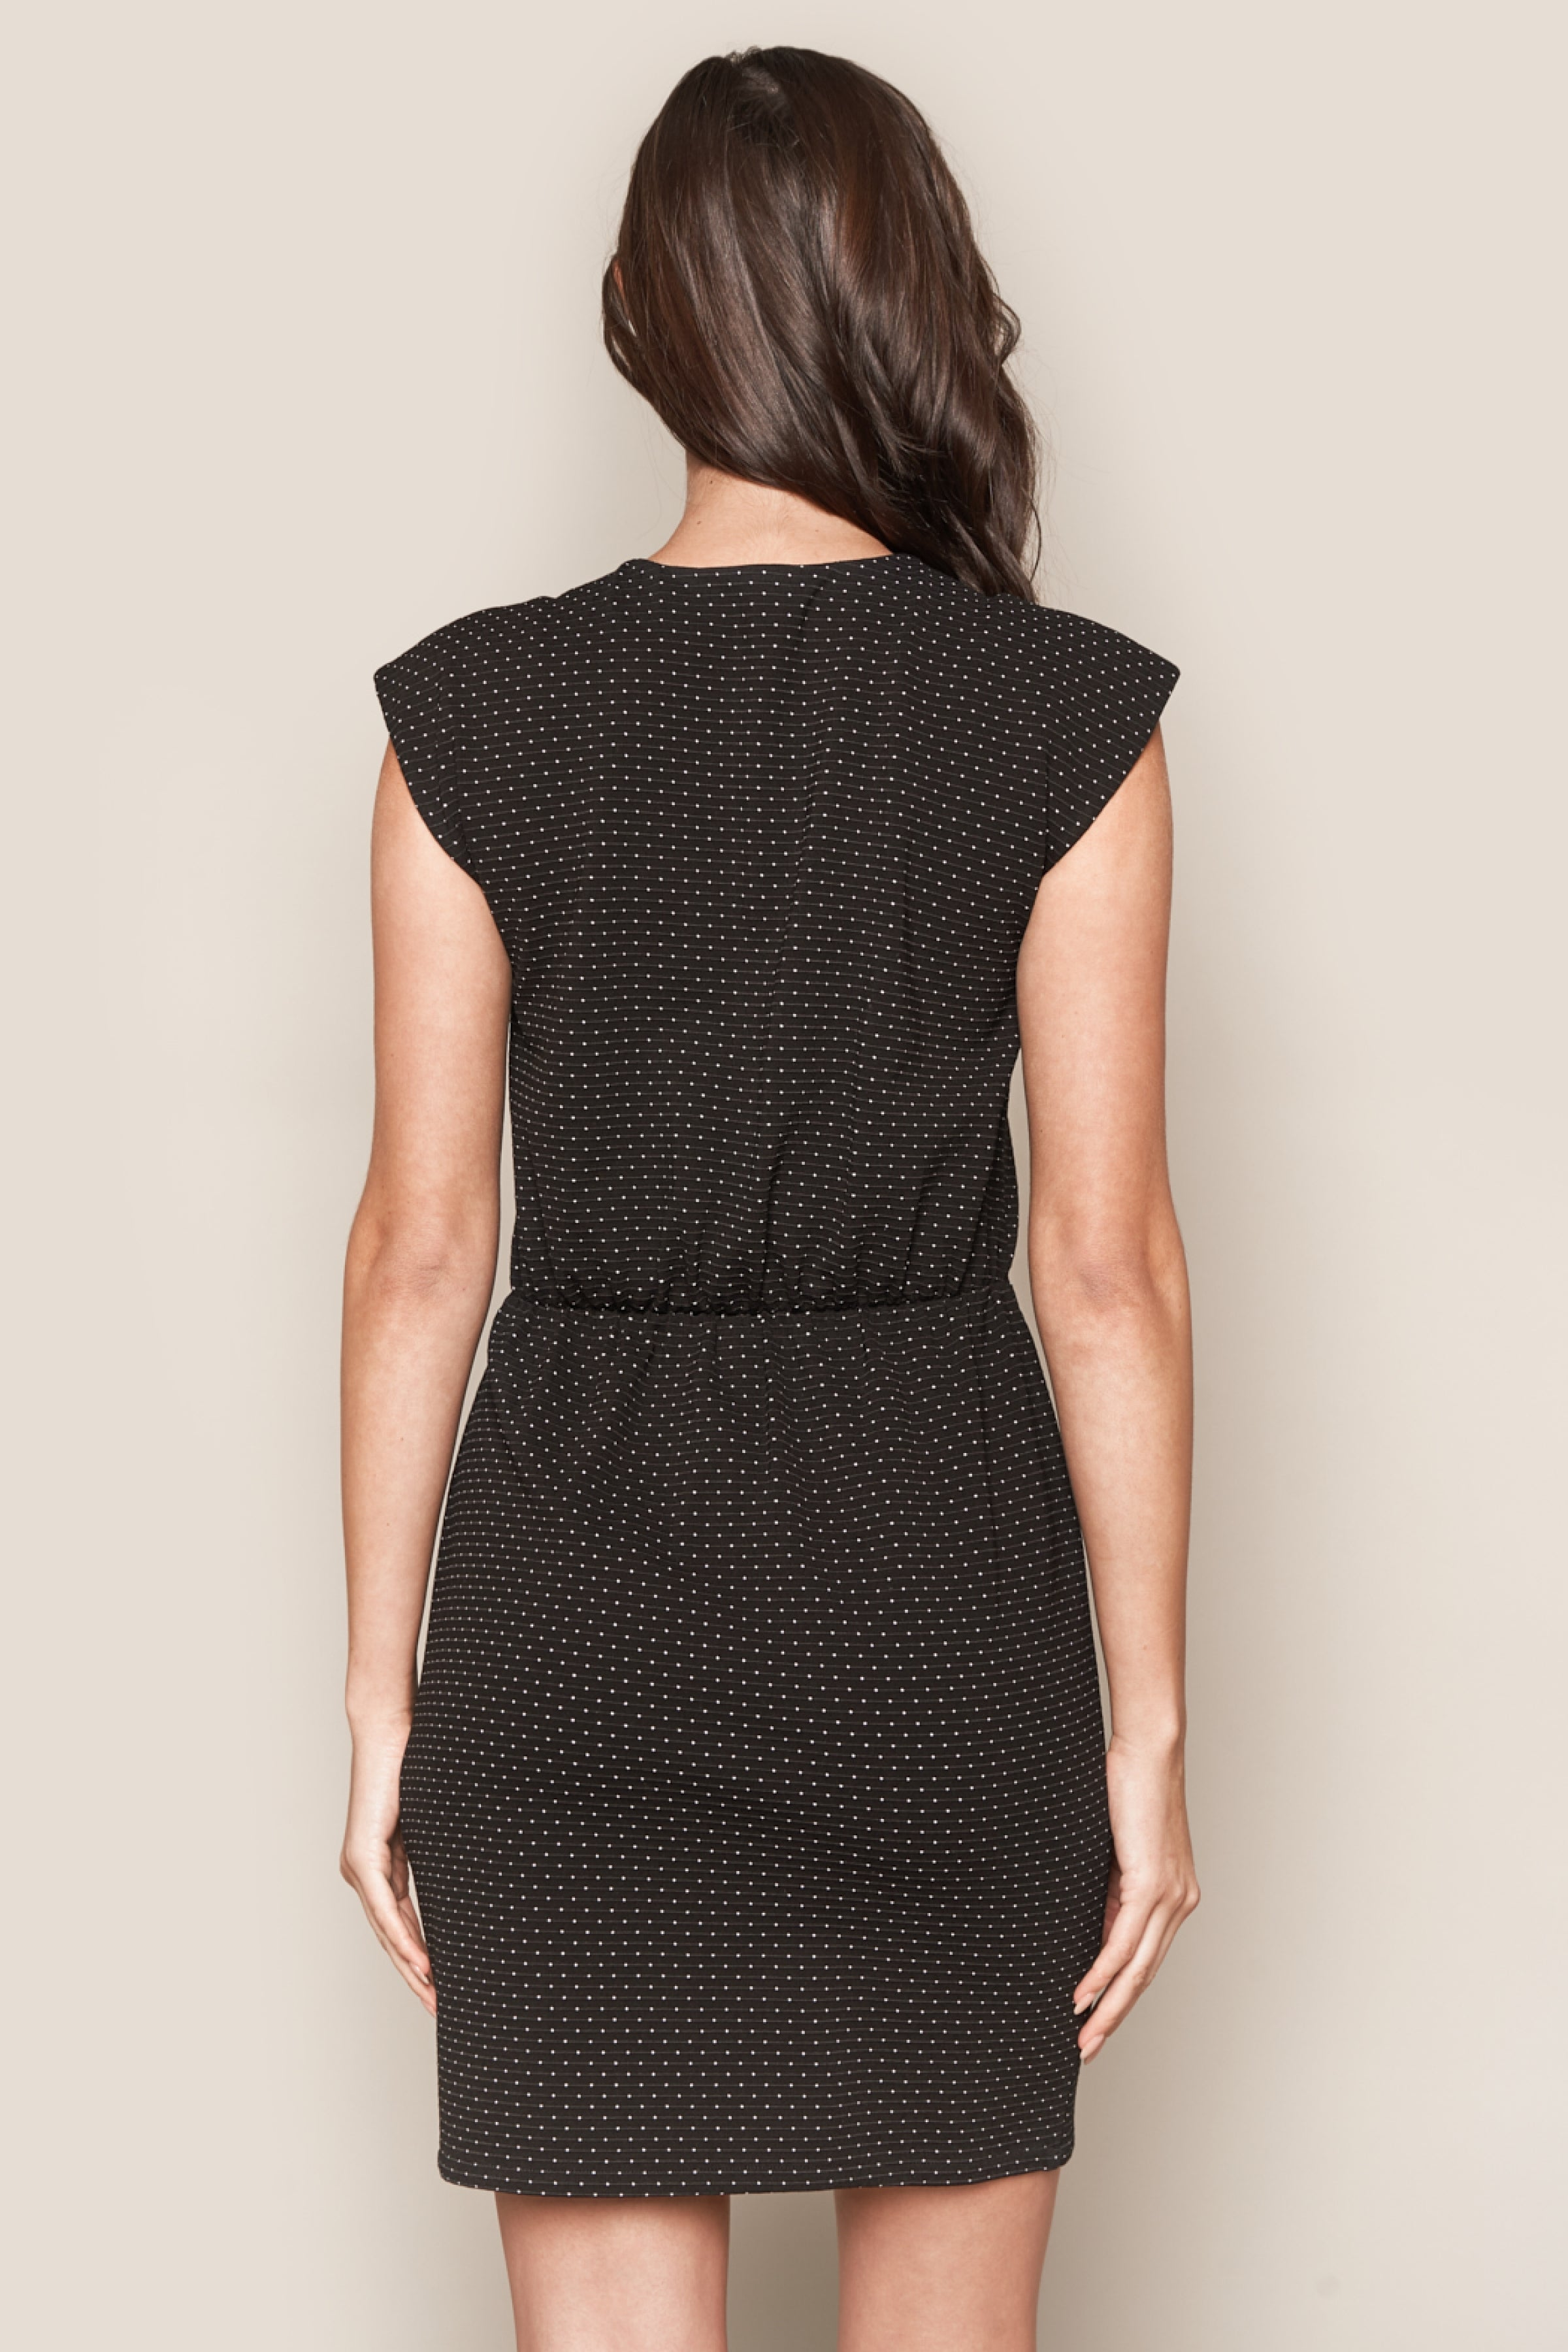 Mia Polka Dot Dress - NIVE GIRL